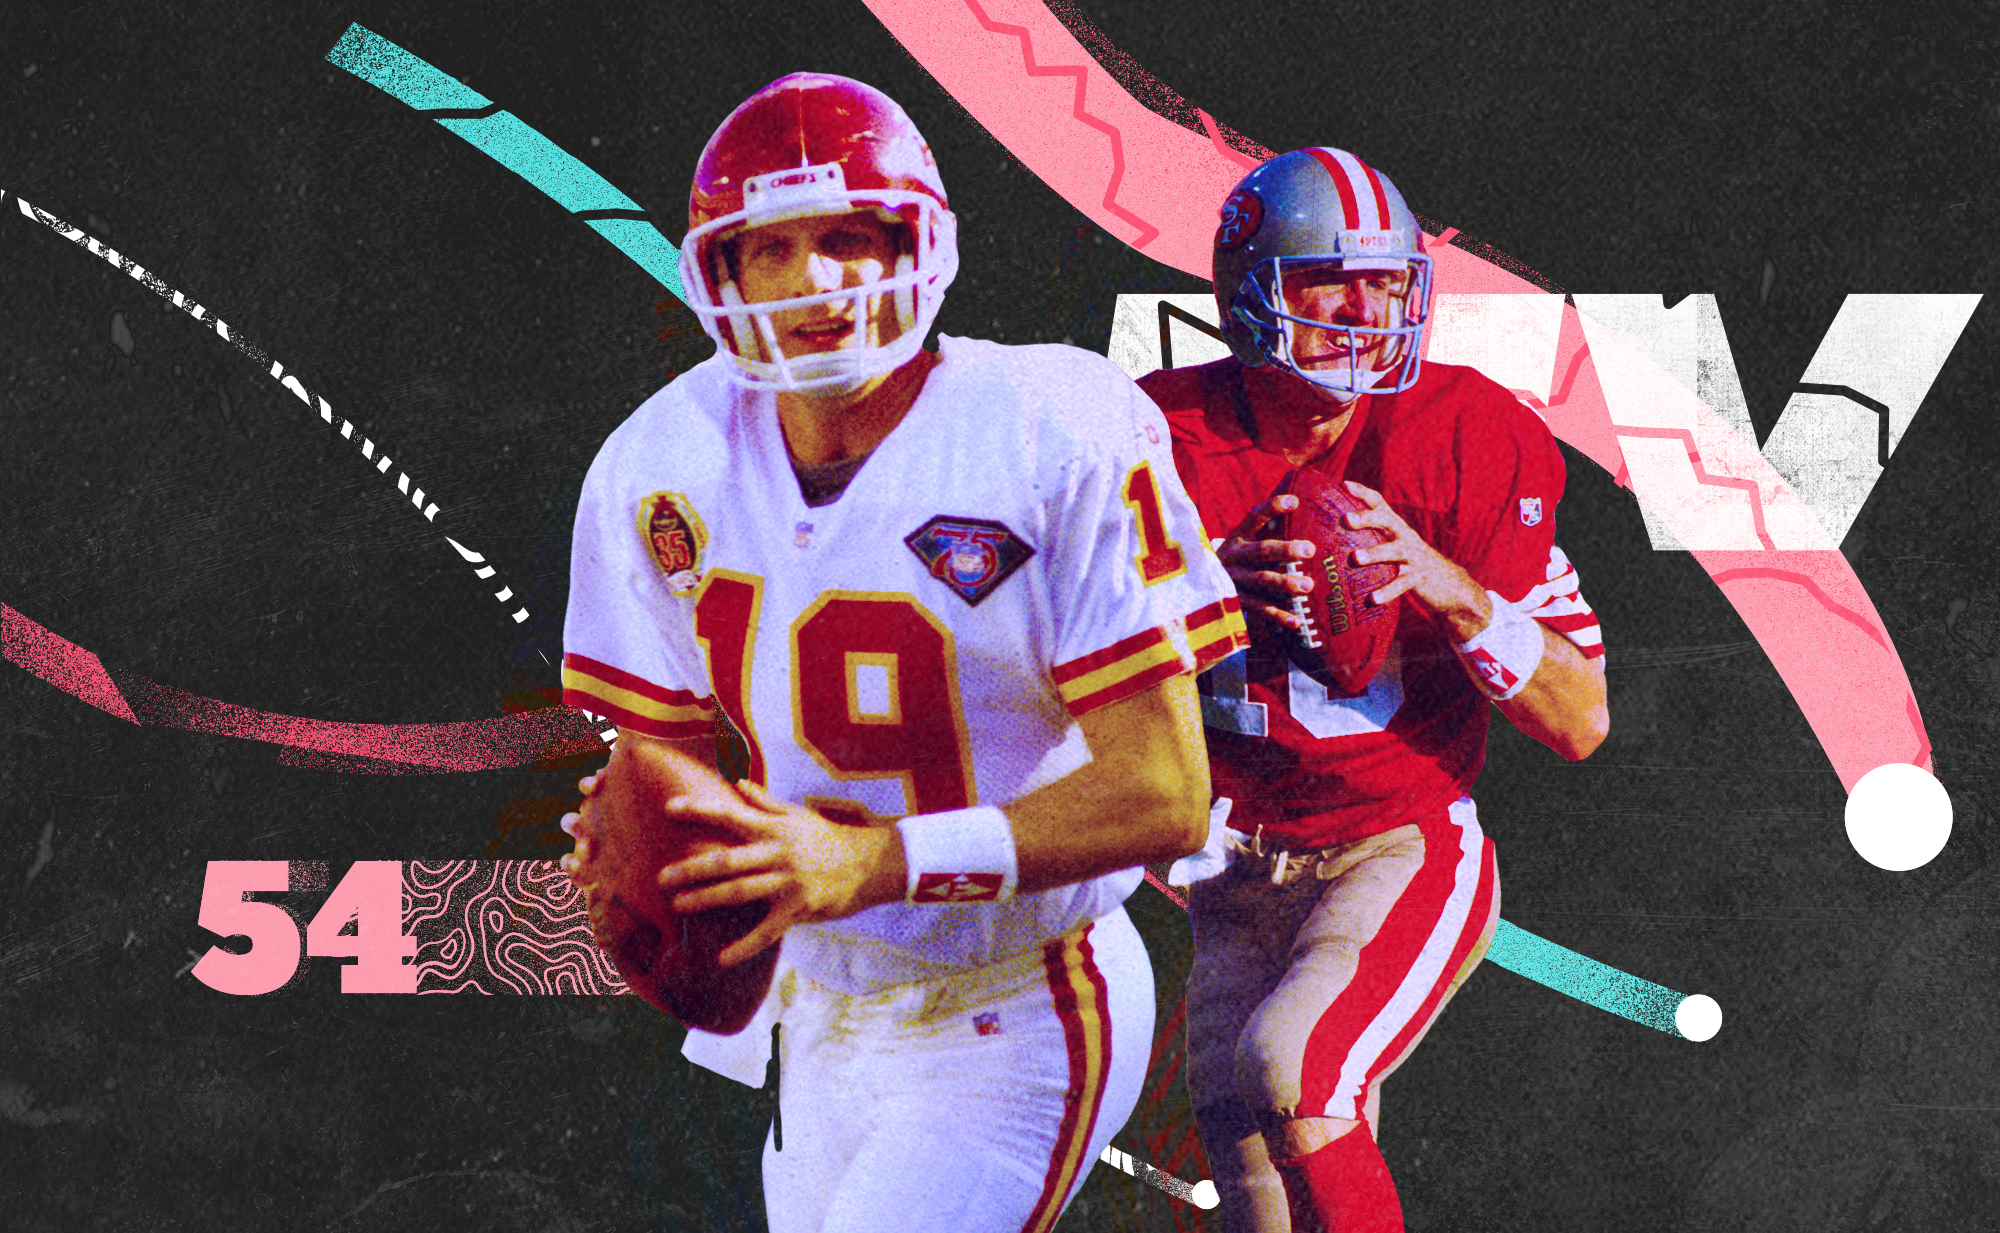 """Side-by-side photos of 49ers/Chiefs QBs Joe Montana and Elvis Grbac, with pink, white, and teal lines and the number """"54"""" in the background"""